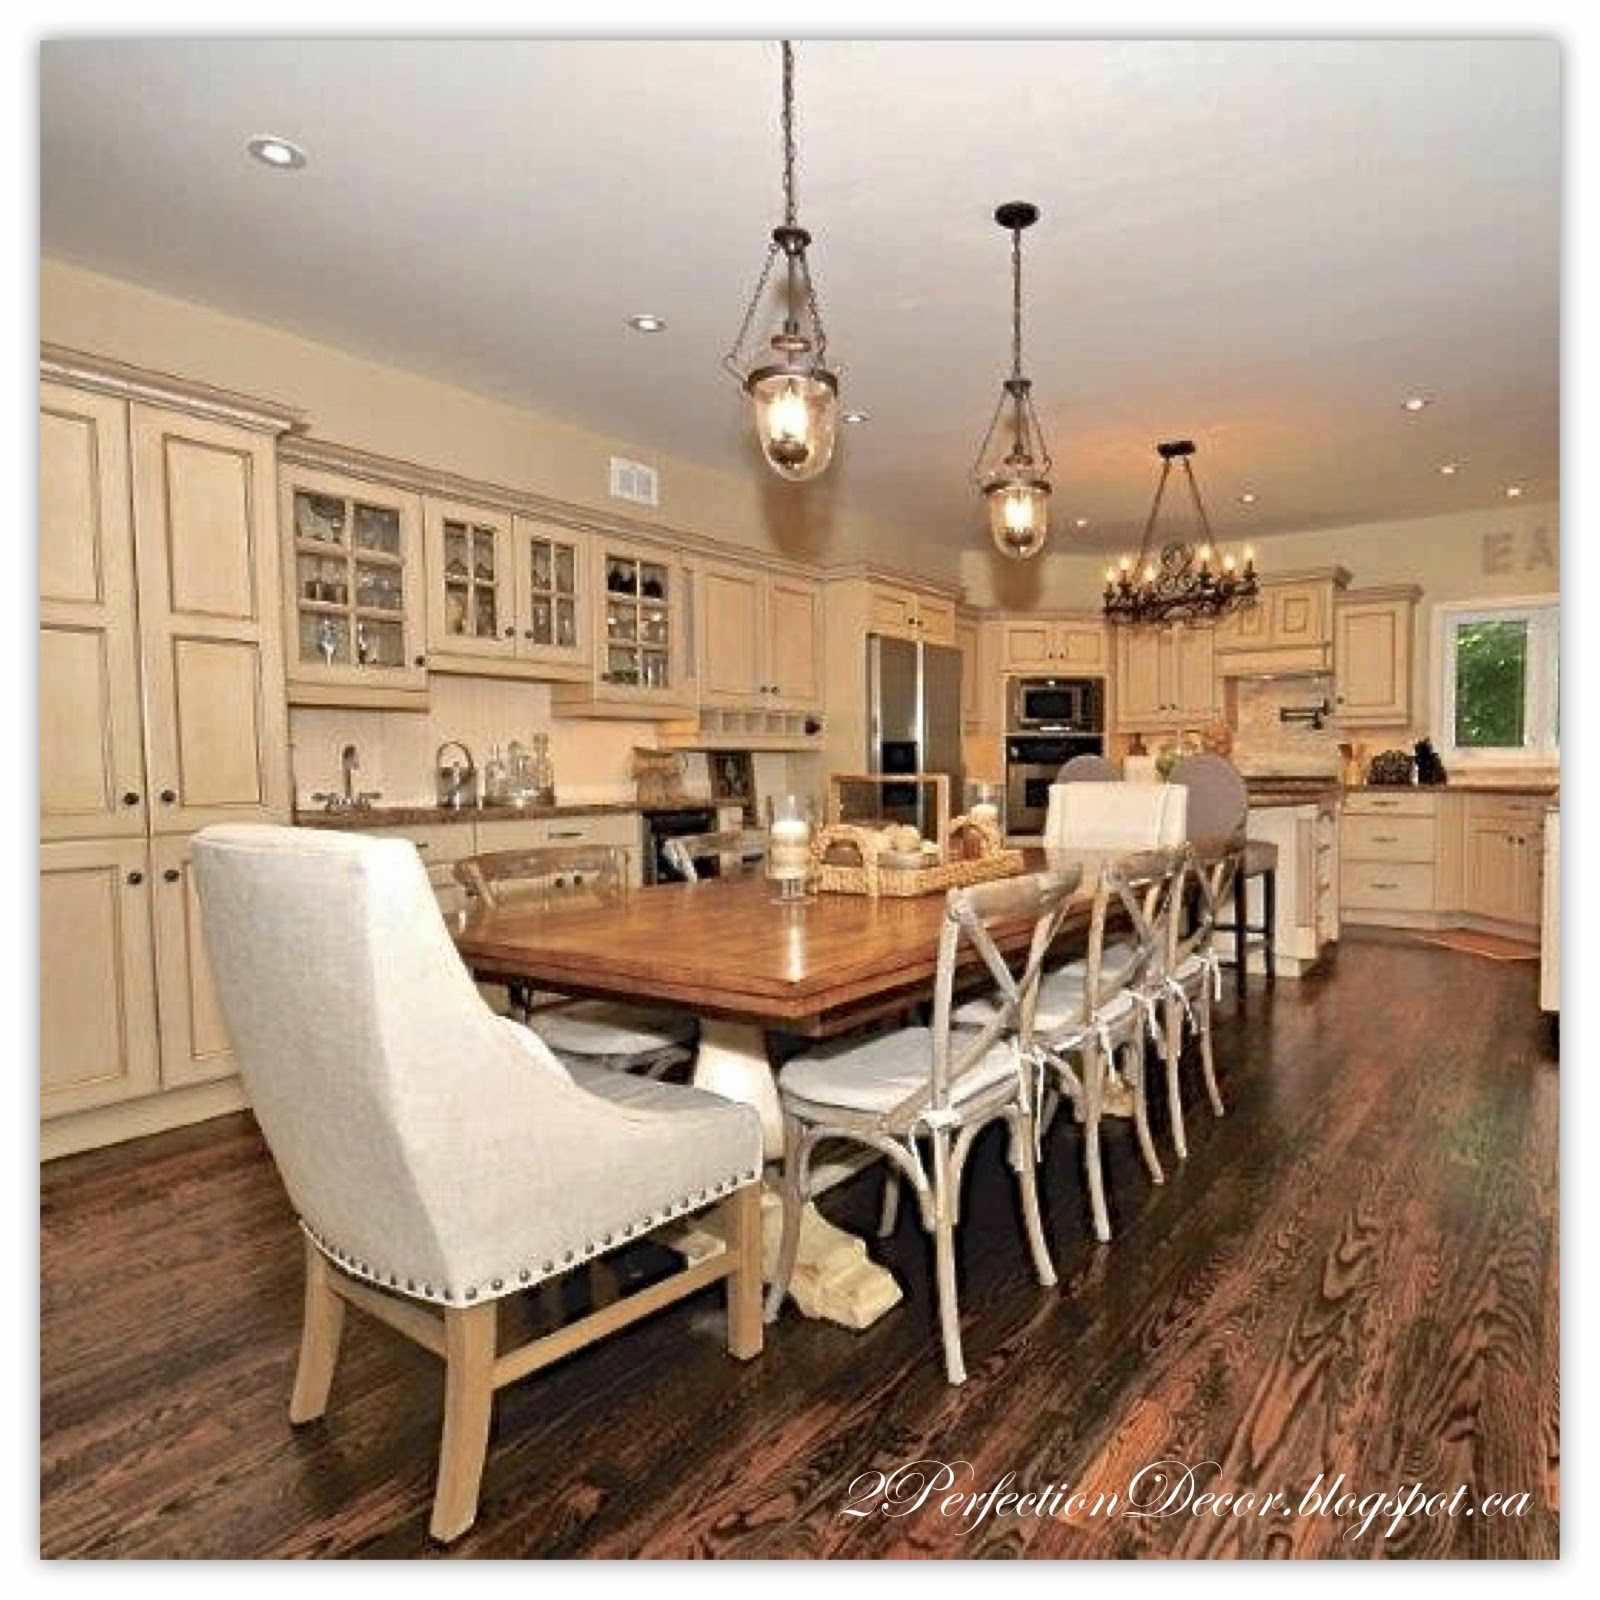 Hanging Chair Restoration Hardware Office Good Posture 2perfection Decor French Country Kitchen Reveal